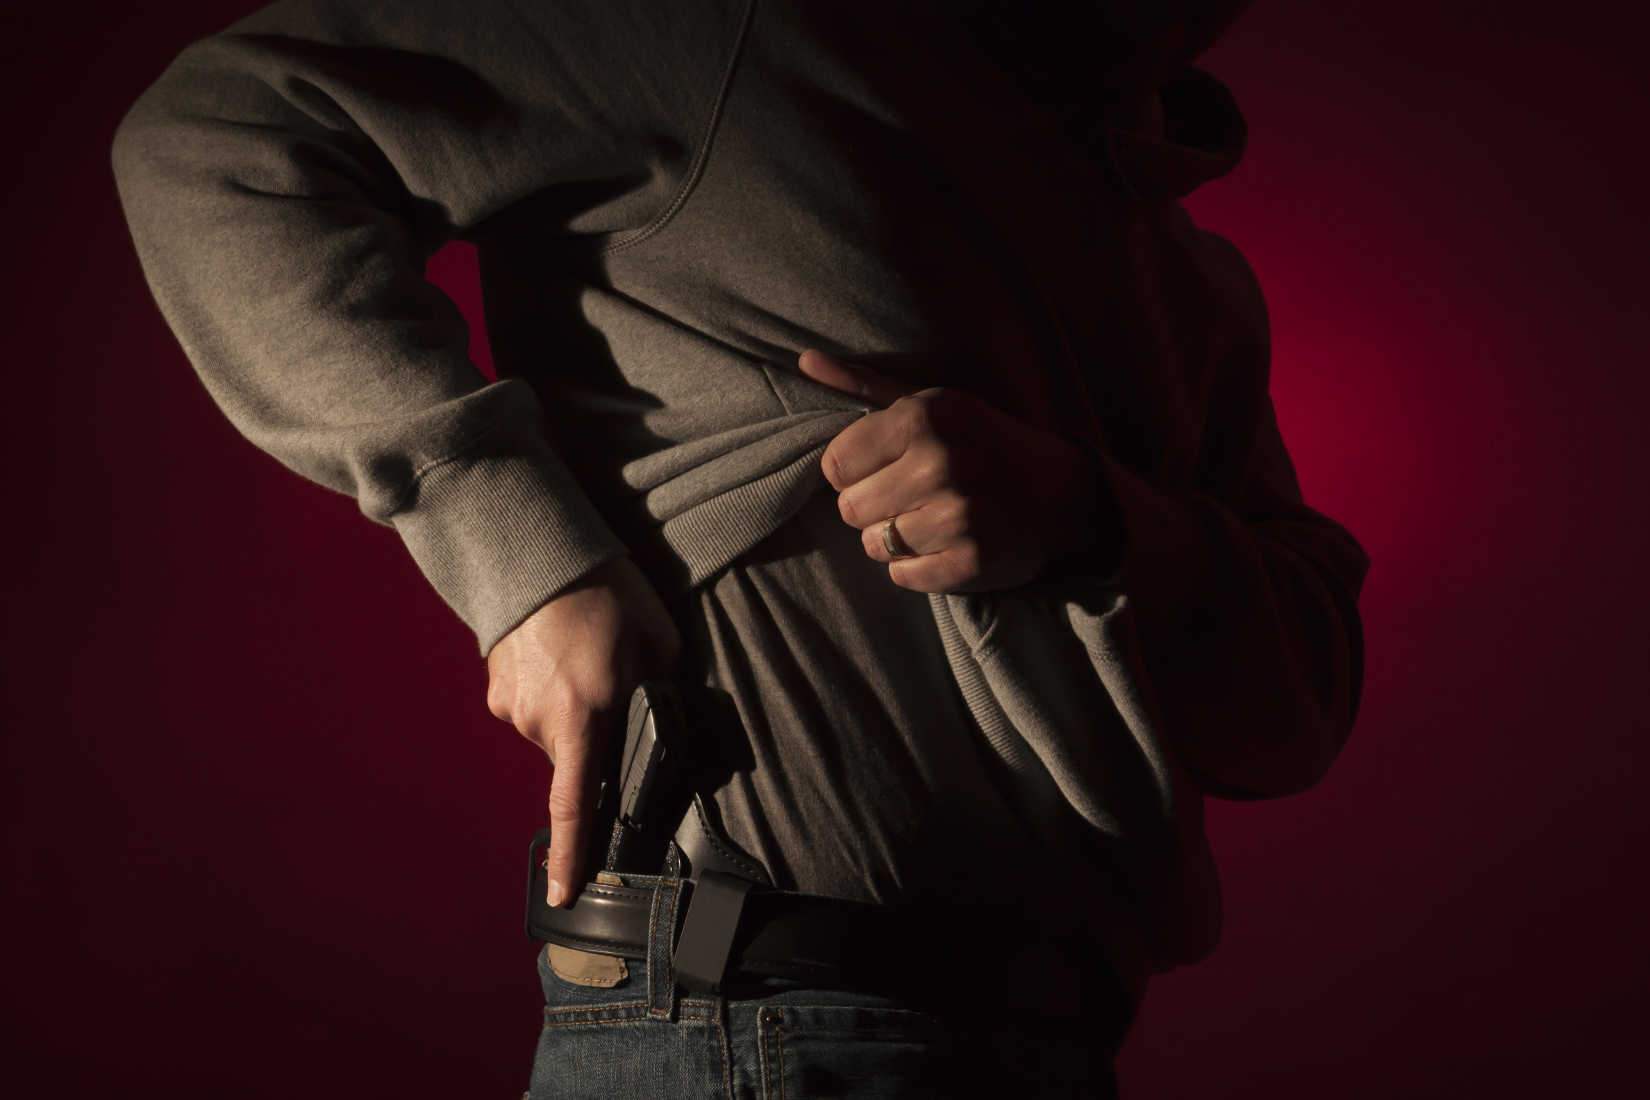 REPORT: Defensive Gun Use Is Way More Common than the MSM Would Have You Believe